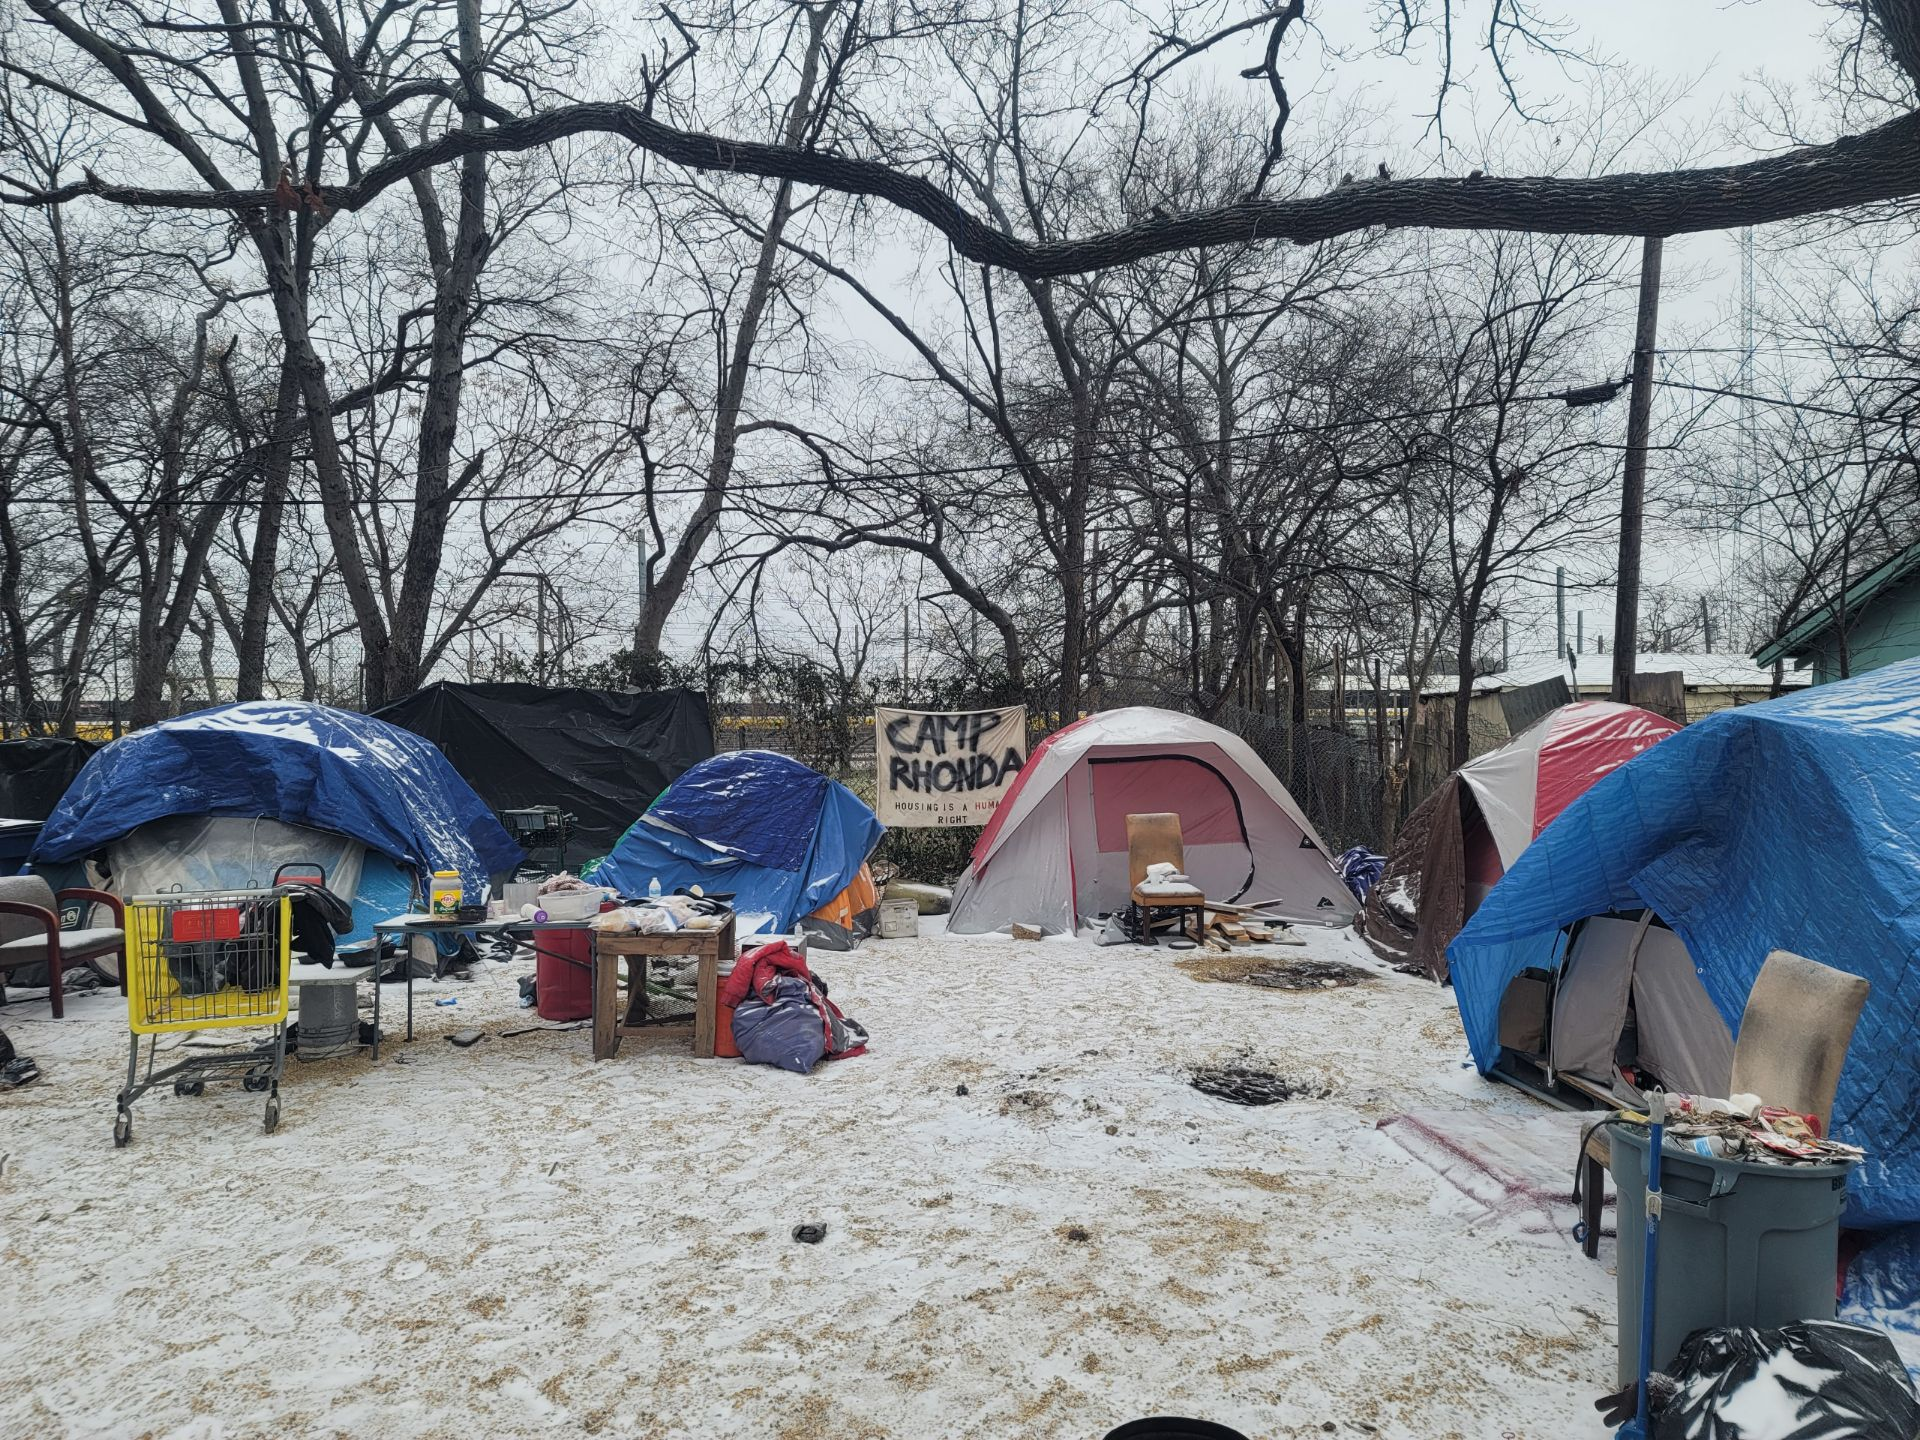 A photo of Dallas homeless encampment Camp Rhonda. Snow-covered tents are set up on a snow-covered ground.